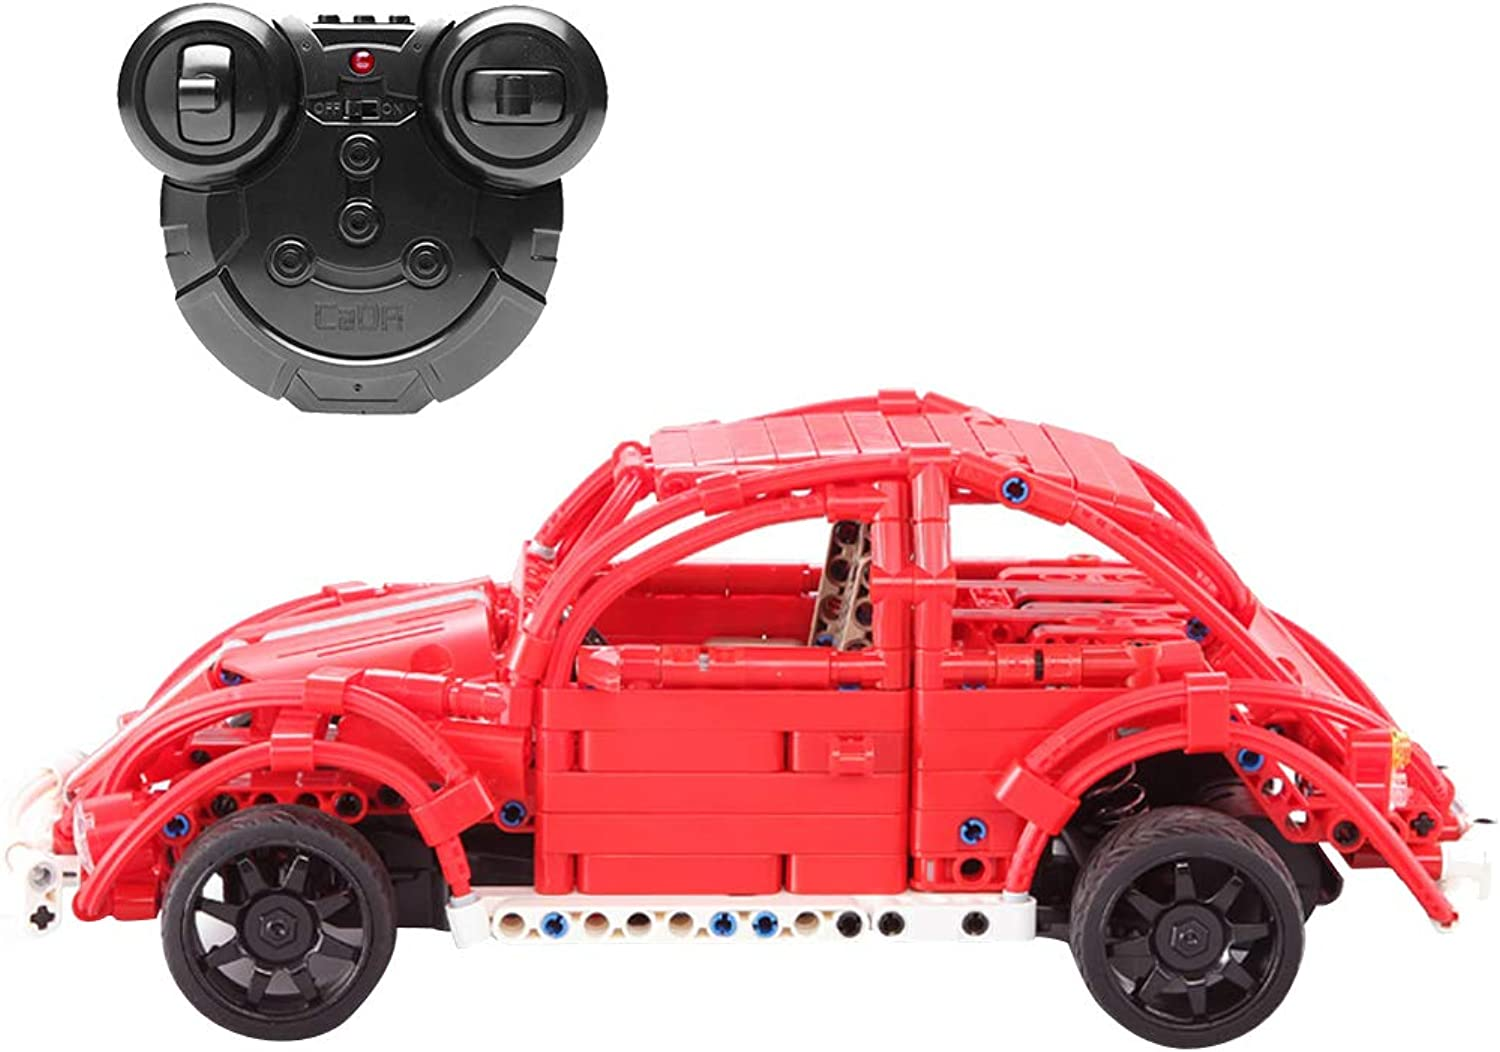 Baoblaze Remote Control Car Toy, 472 PCS Beetle Car Kit with Rechargeable Battery, Construction Building Blocks DIY Vehicle Toy, Kids Educational Toy Gift